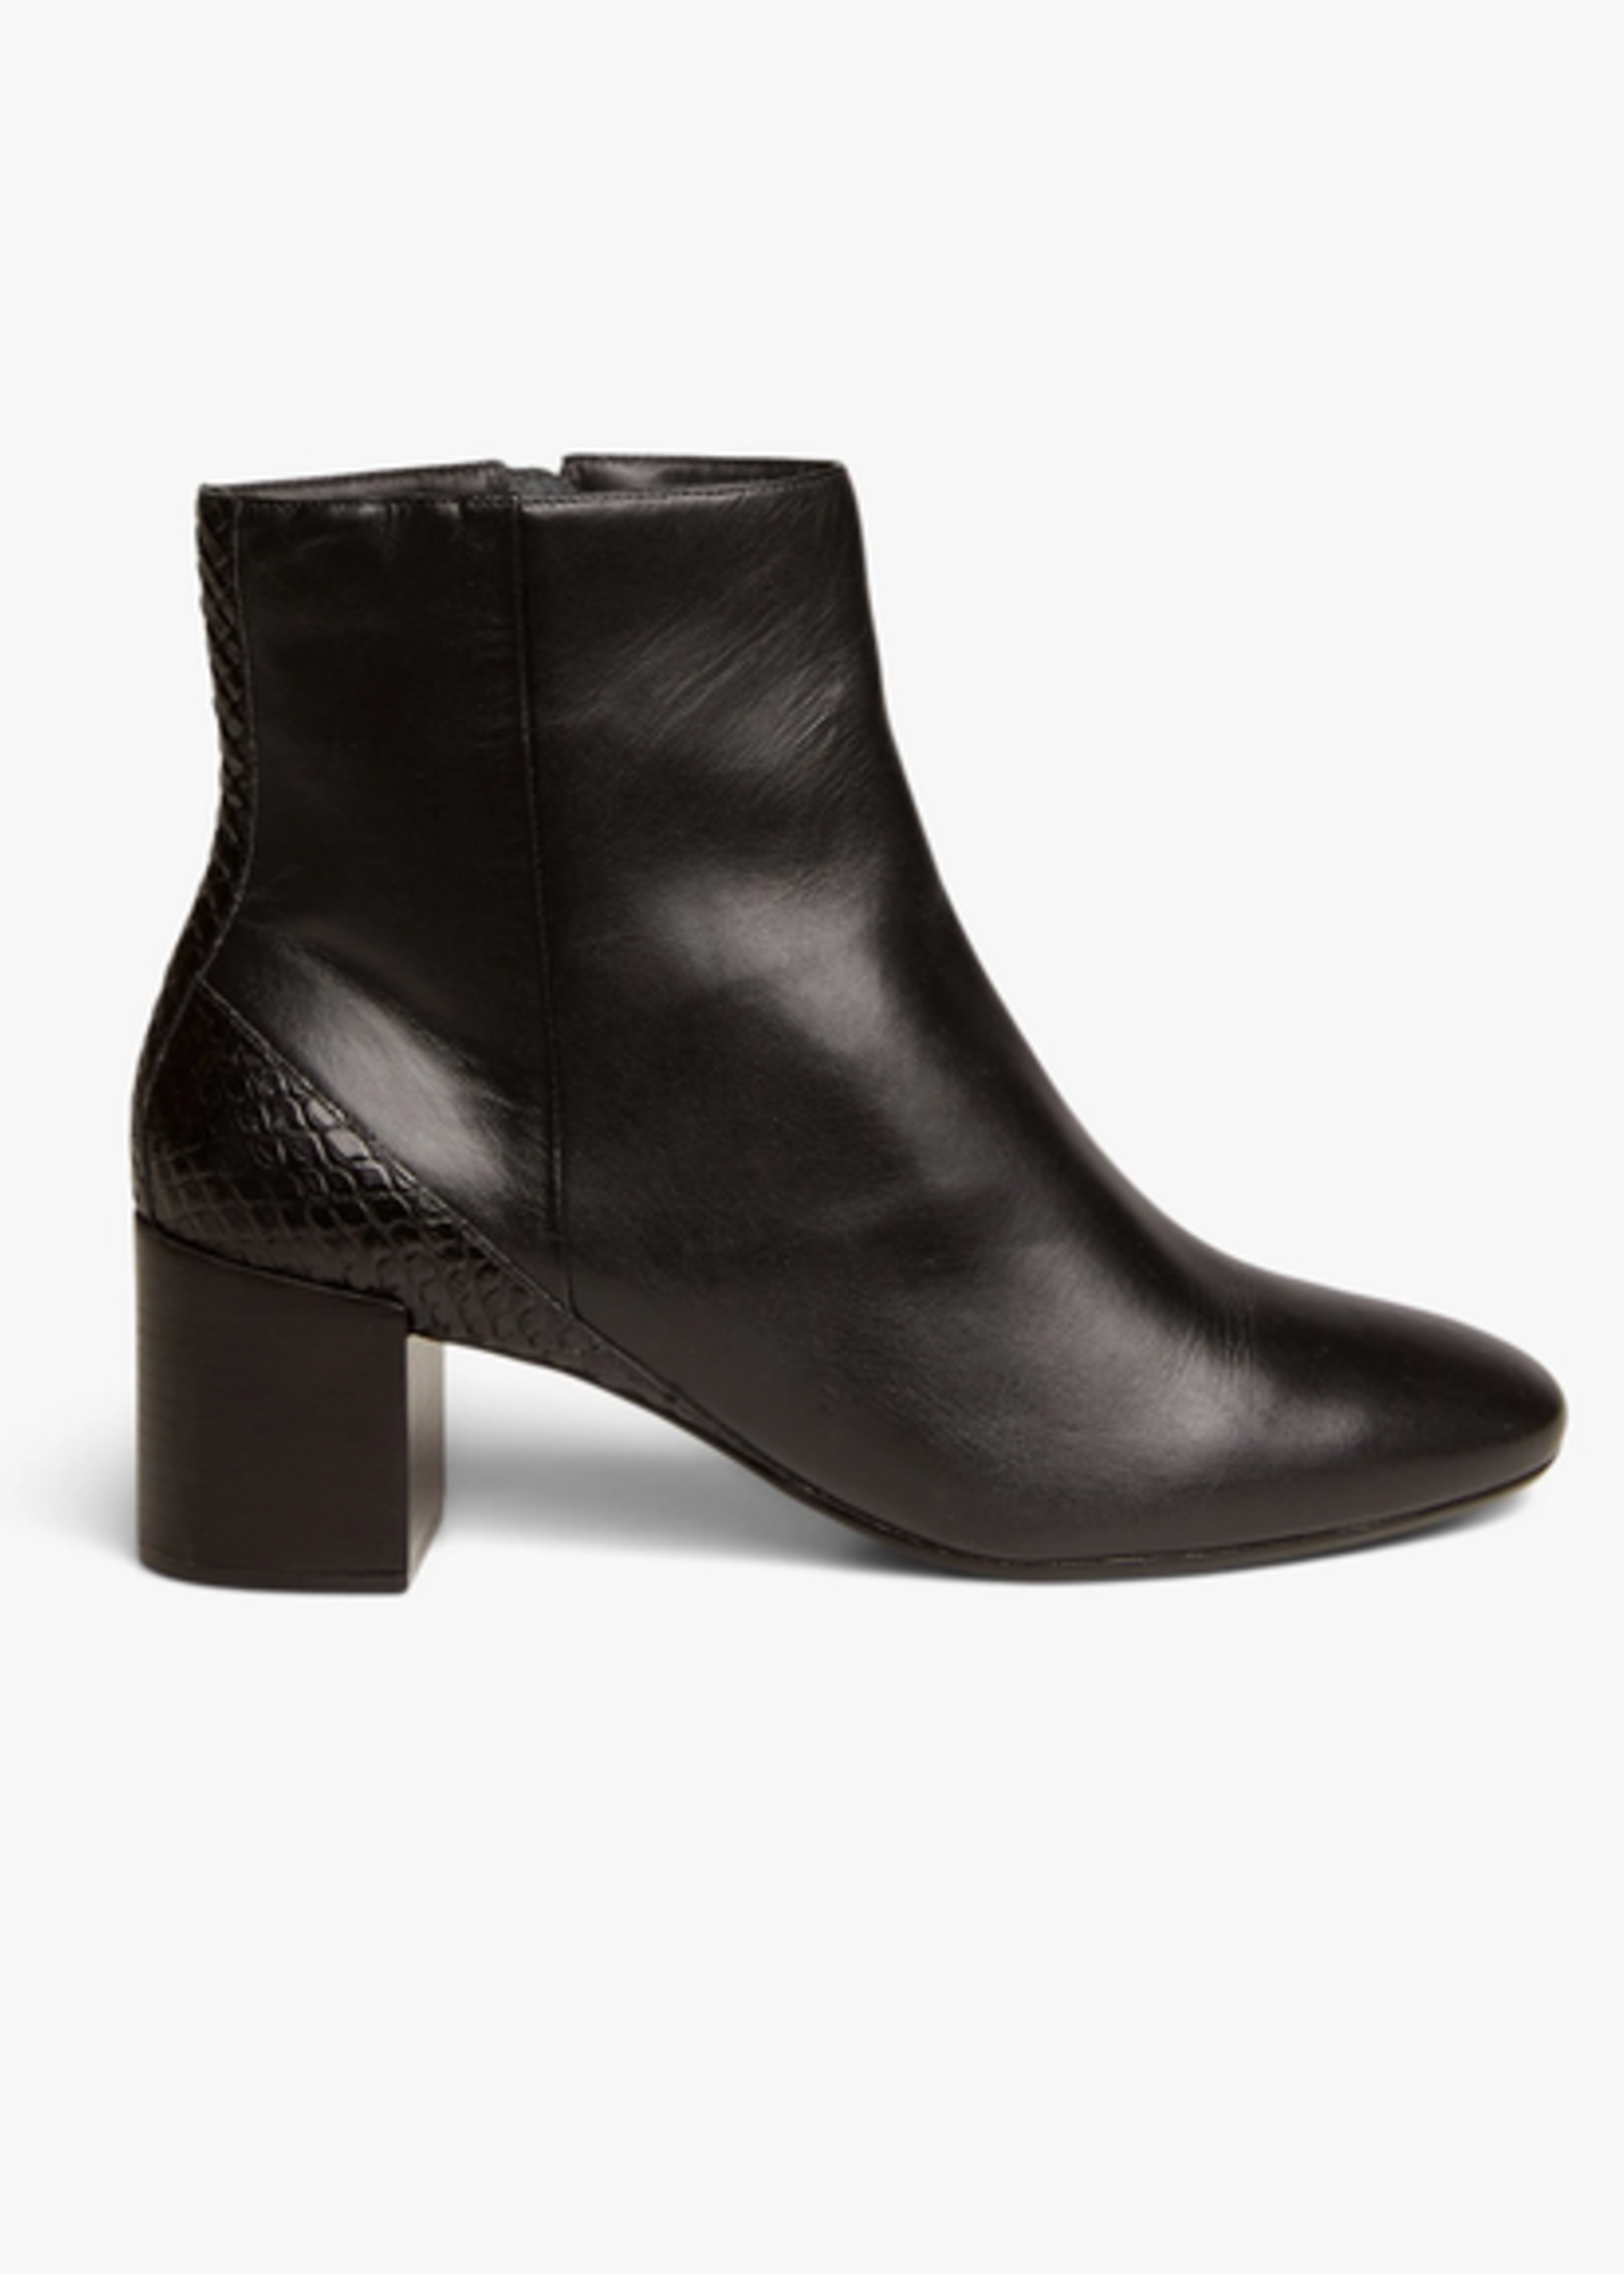 Elitaire Boutique Dotti Ankle Boot in Black